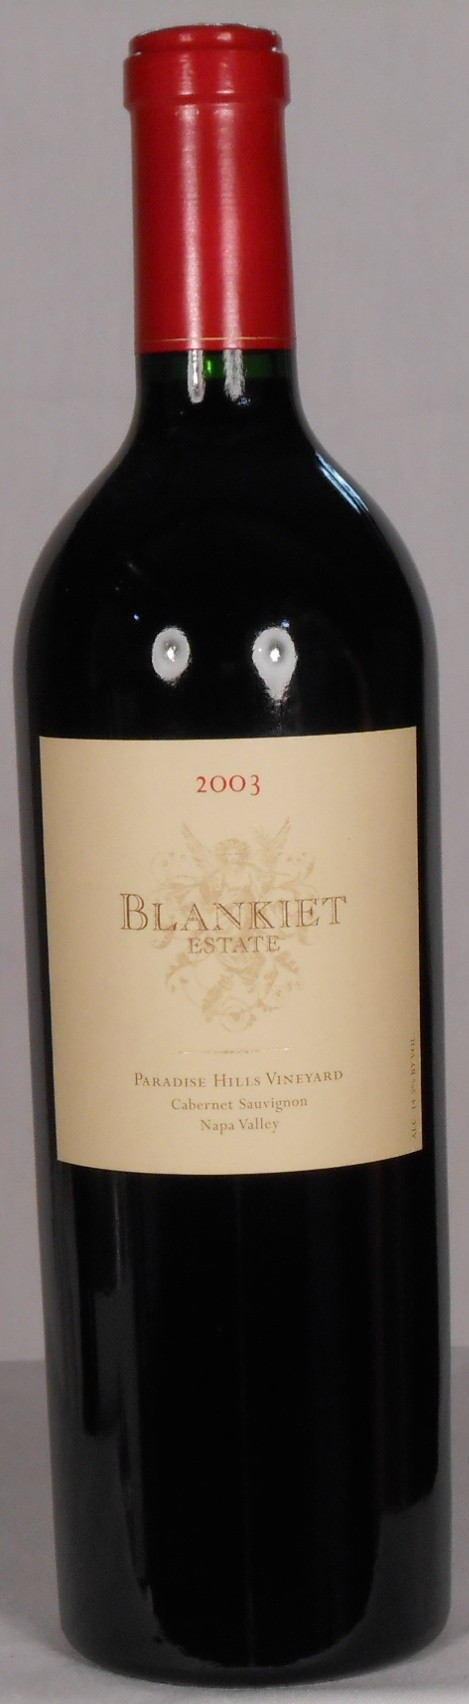 Blankiet Estate Cabernet Sauvignon Paradise Hills Vineyard Napa Valley 2003